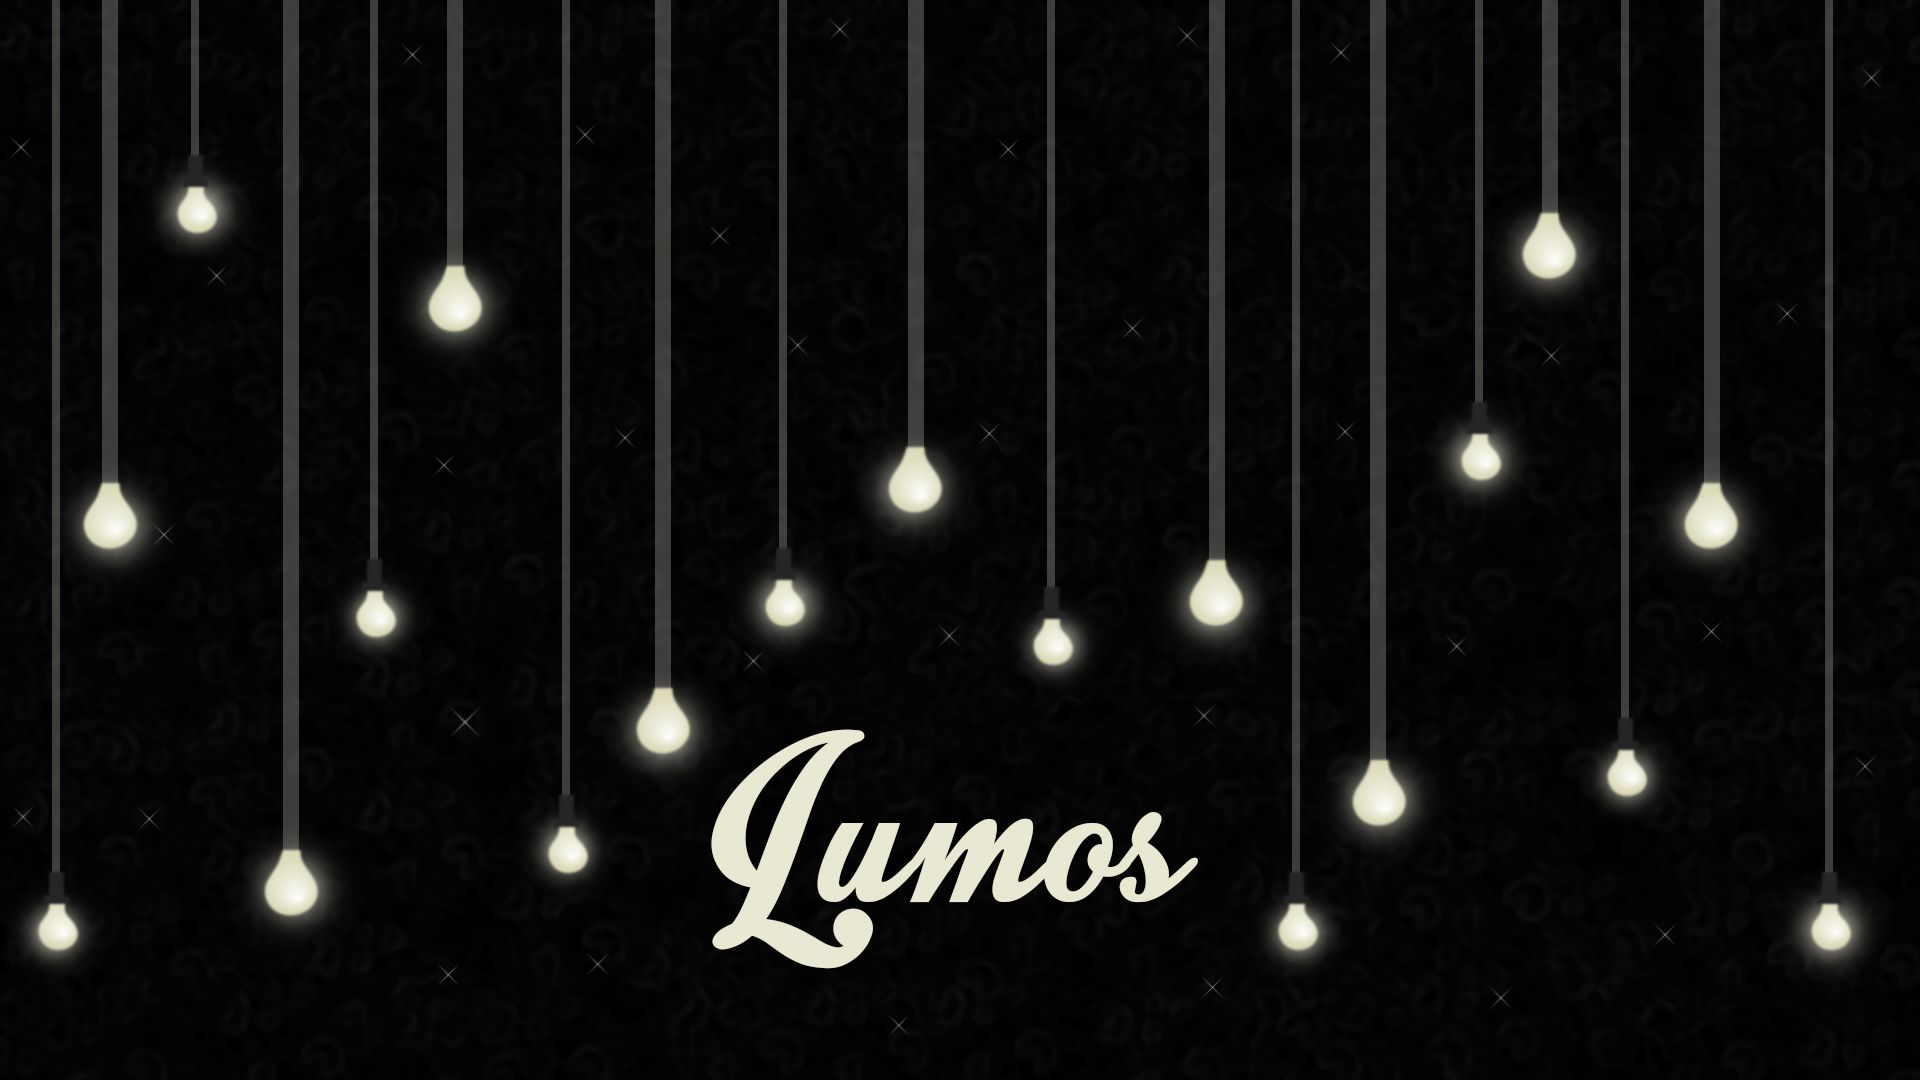 lumos harry potter desktop background desktop